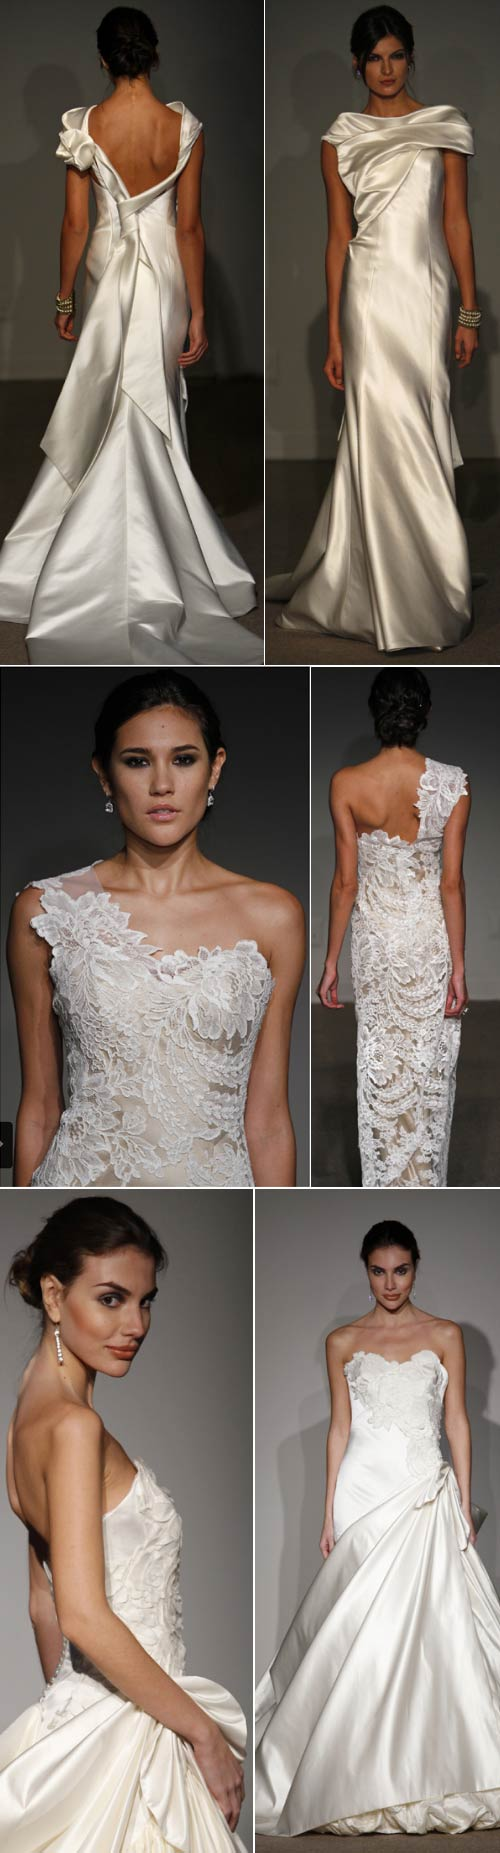 Ulla-Maija Couture Wedding Dresses